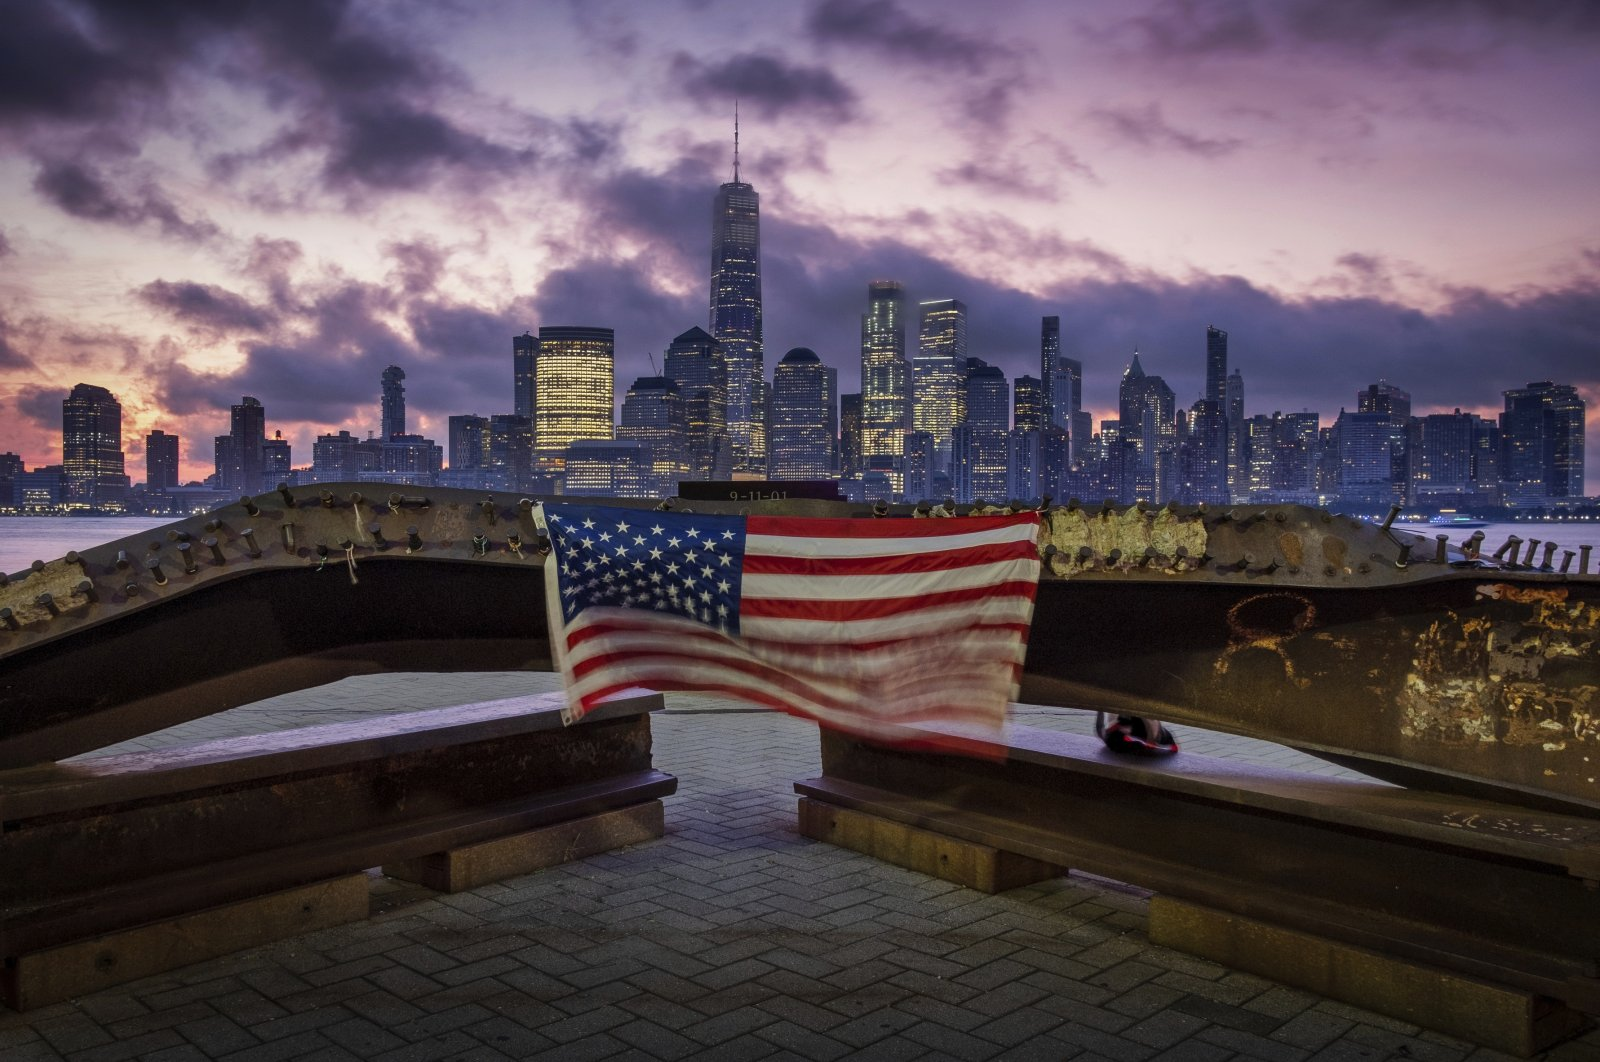 A U.S. flag hanging from a steel girder, damaged in the Sept. 11, 2001 attacks on the World Trade Center in New York City, blows in the breeze at a memorial as the sun rises behind the One World Trade Center building and the re-developed area where the Twin Towers of the World Trade Center once stood in New York City on the 18th anniversary of the attacks, Jersey City, New Jersey, Sept. 11, 2019. (AP Photo)